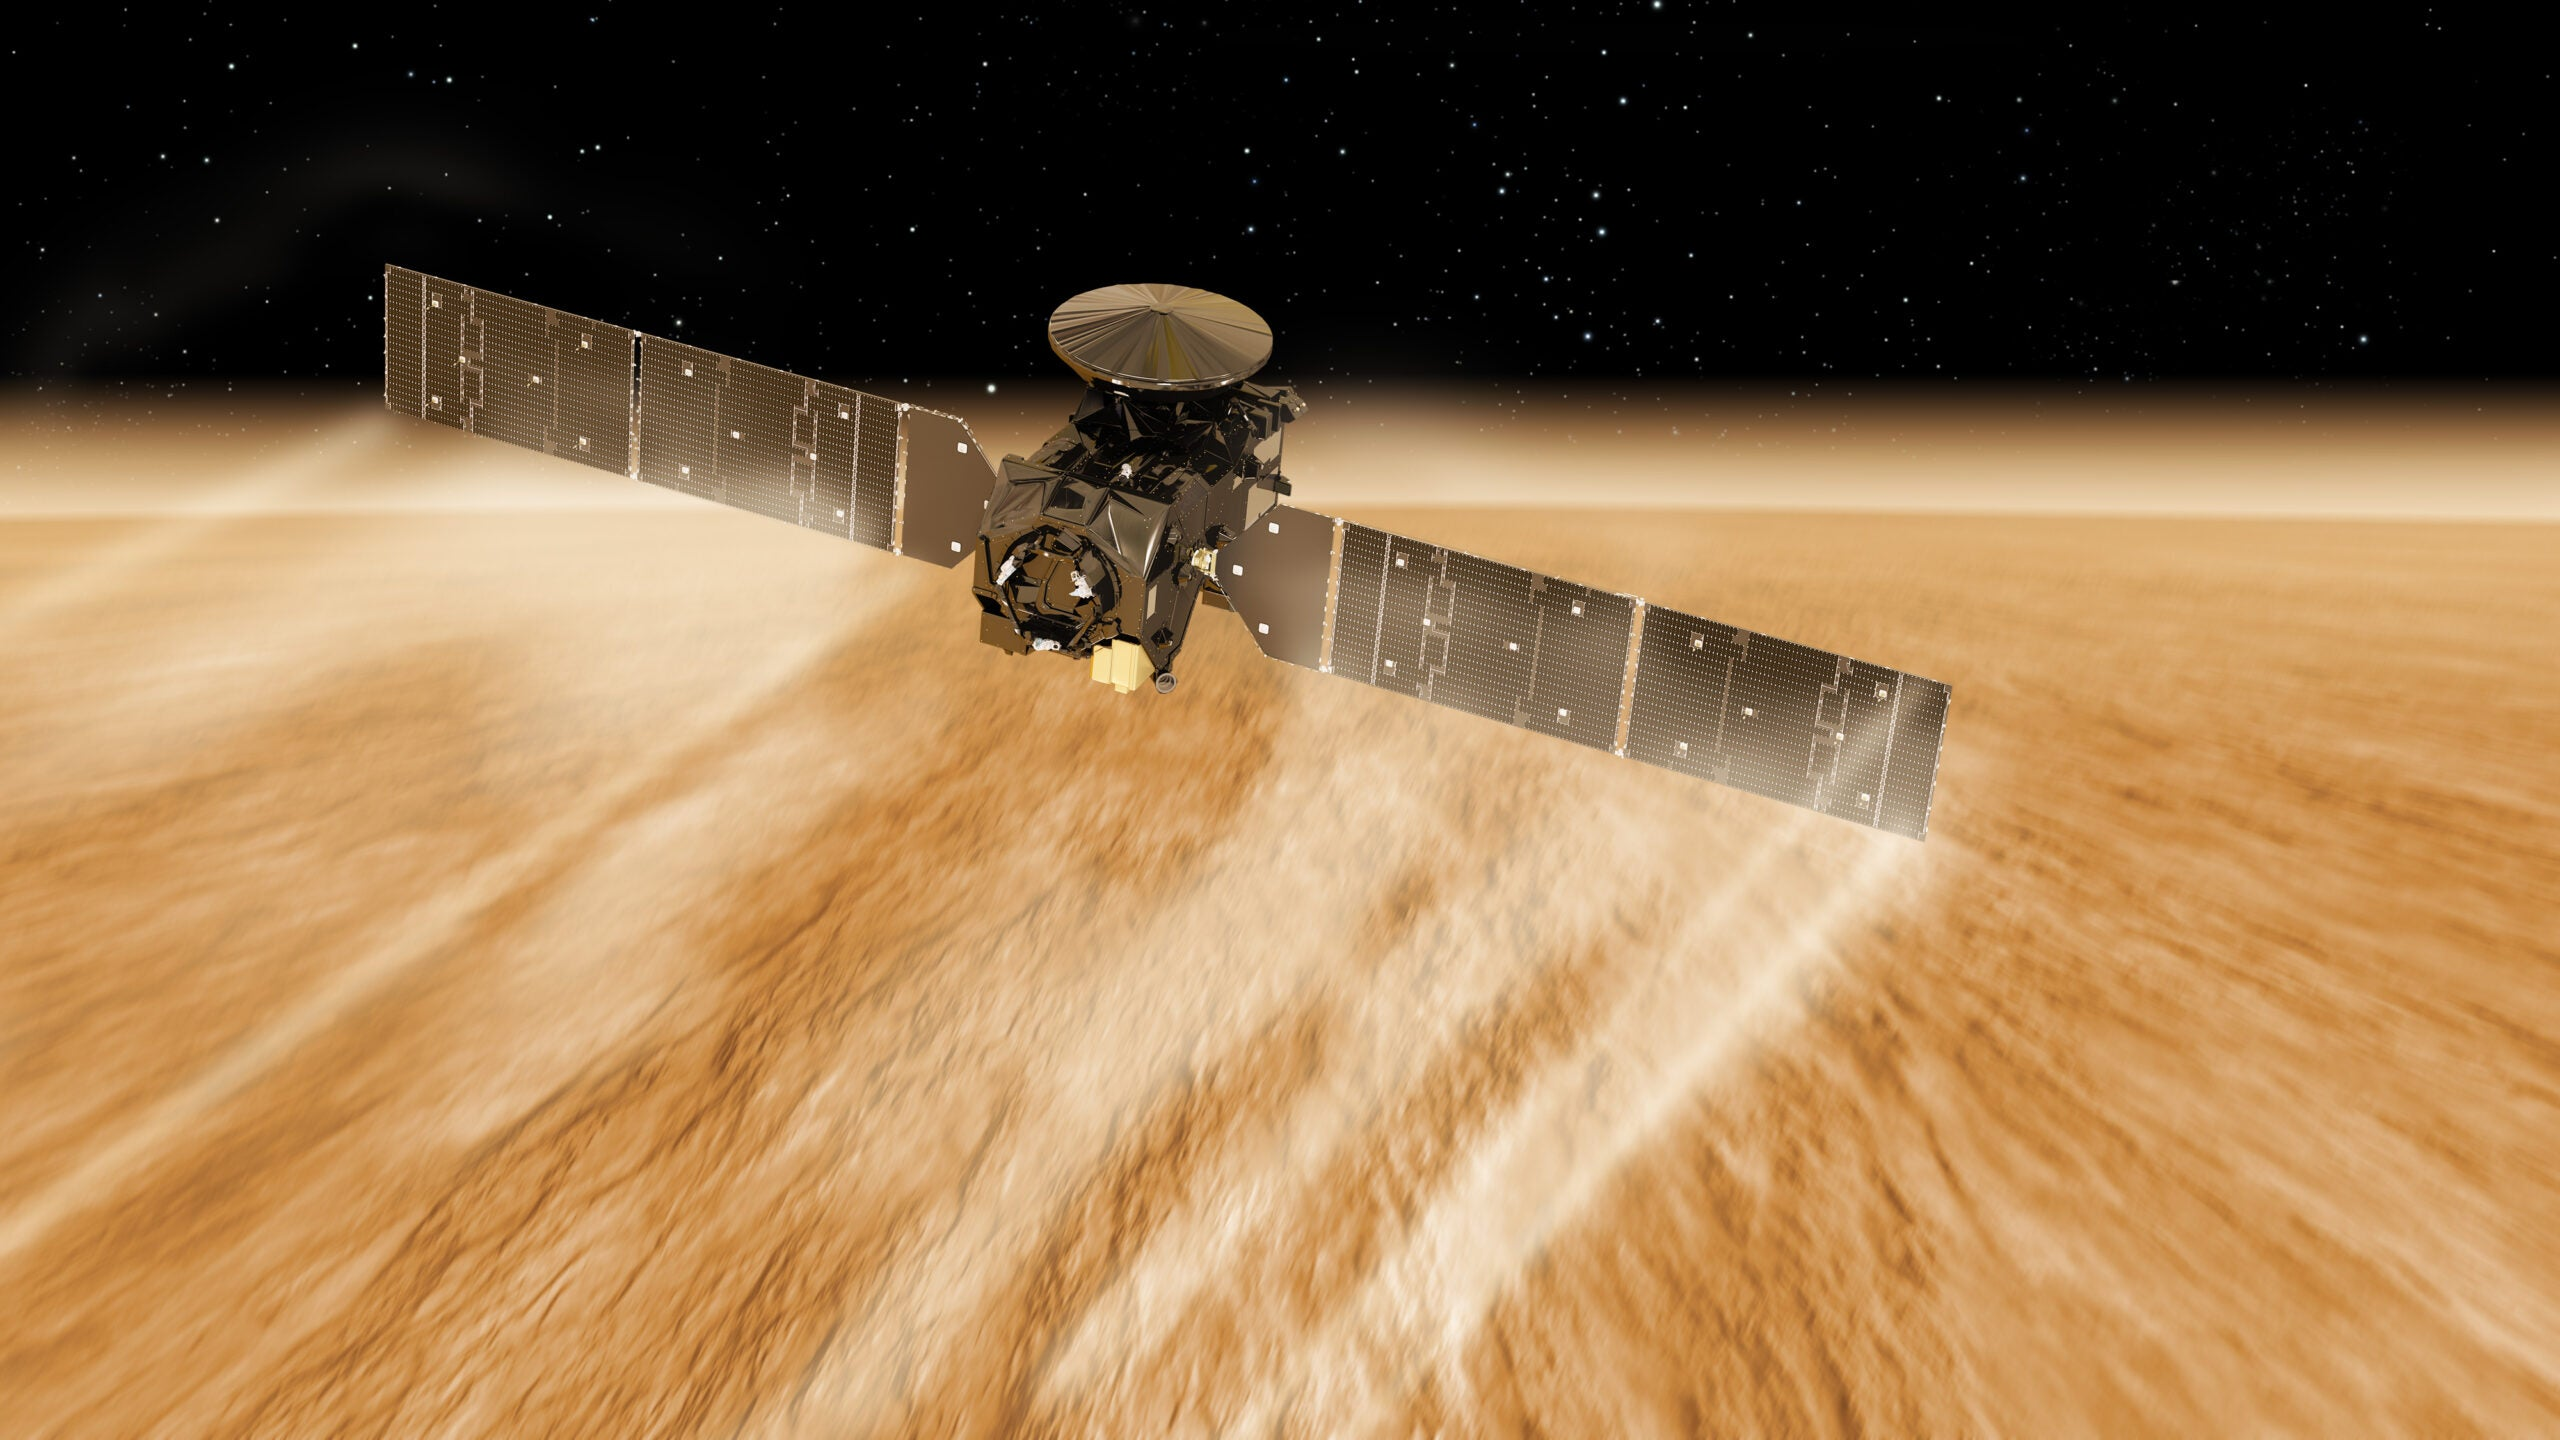 A spacecraft is using the Martian atmosphere to get closer to the planet